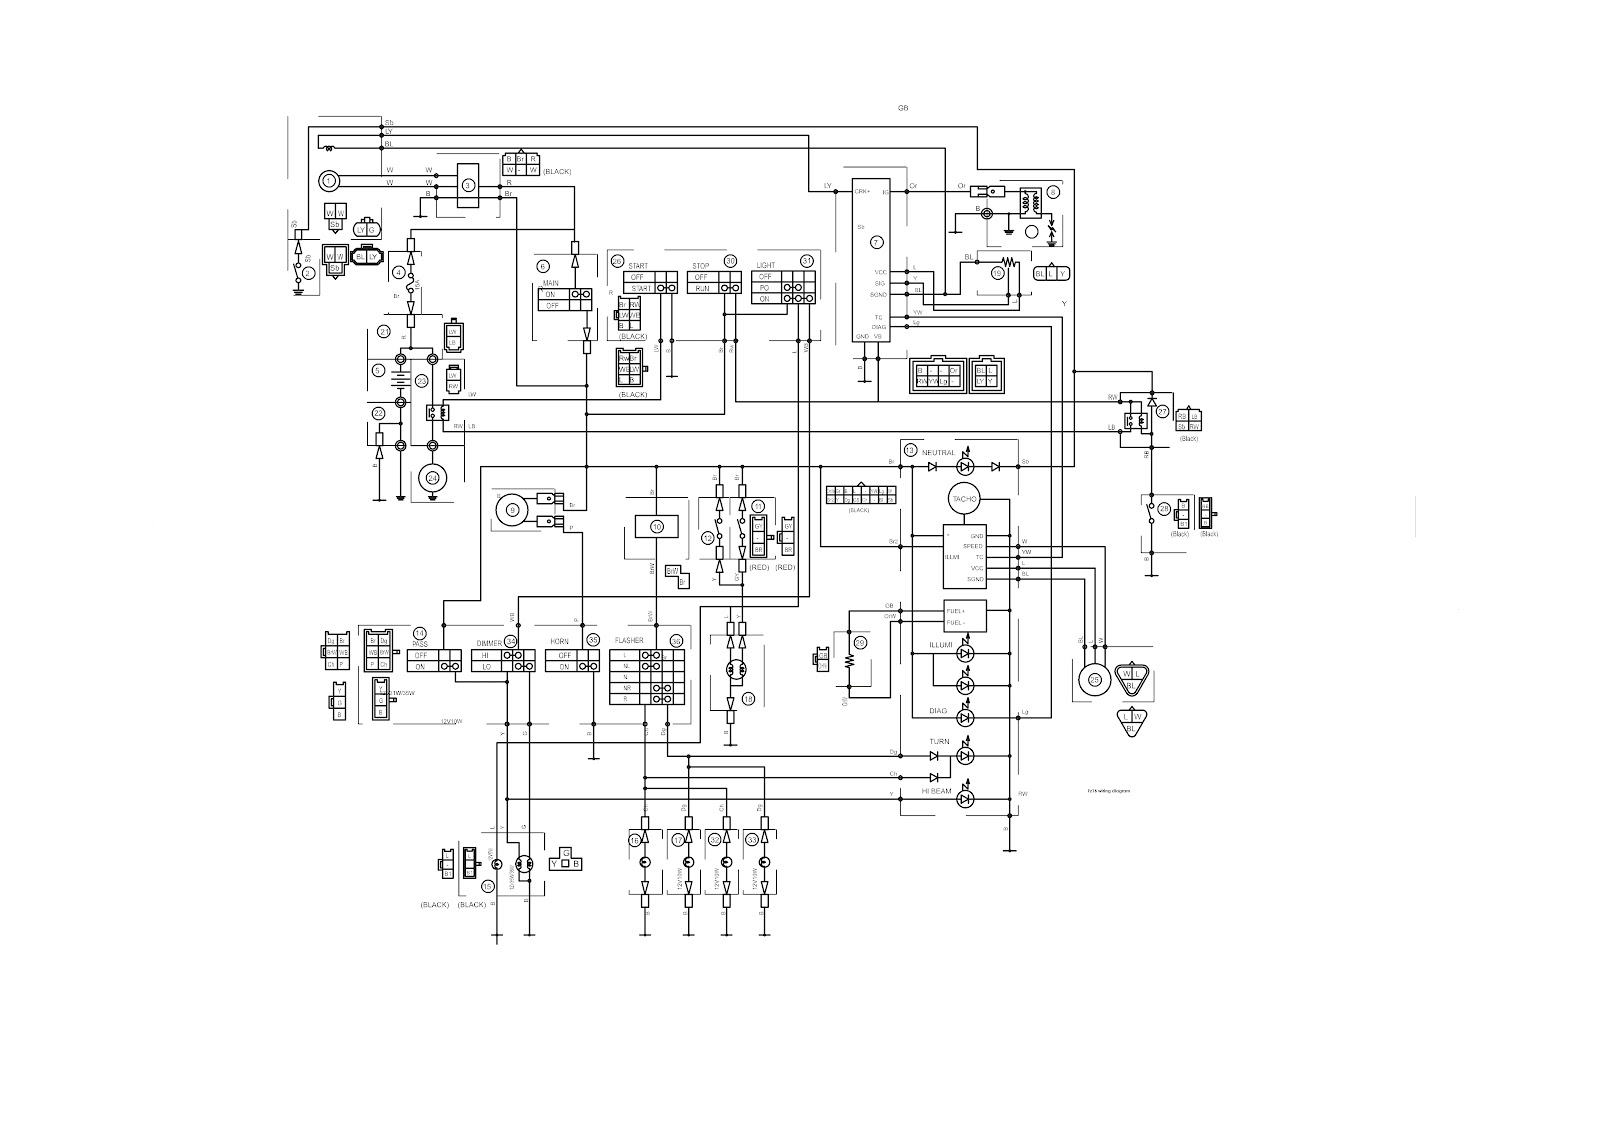 Wiring Diagram Pengkabelan Yamaha Byson Menjual Spare A Dimmer Switch To Table Lamp Free Download Diagrams